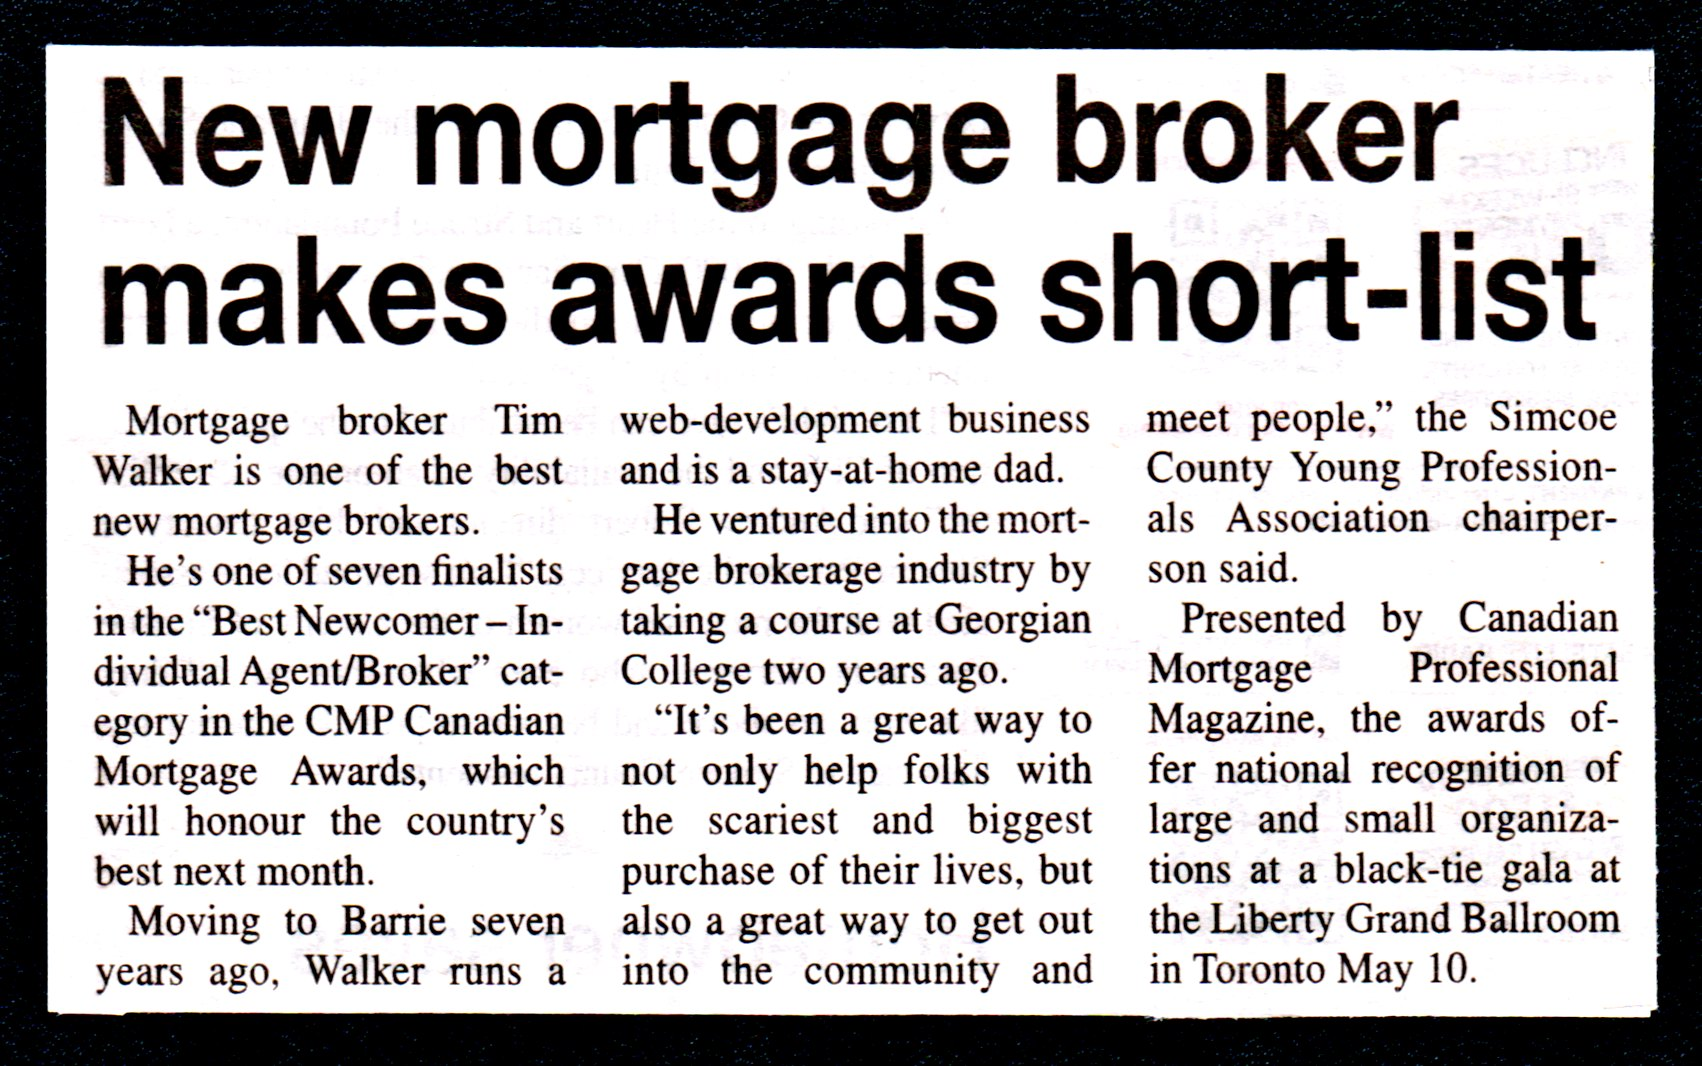 New Mortgage Broker Makes Awards Short-List